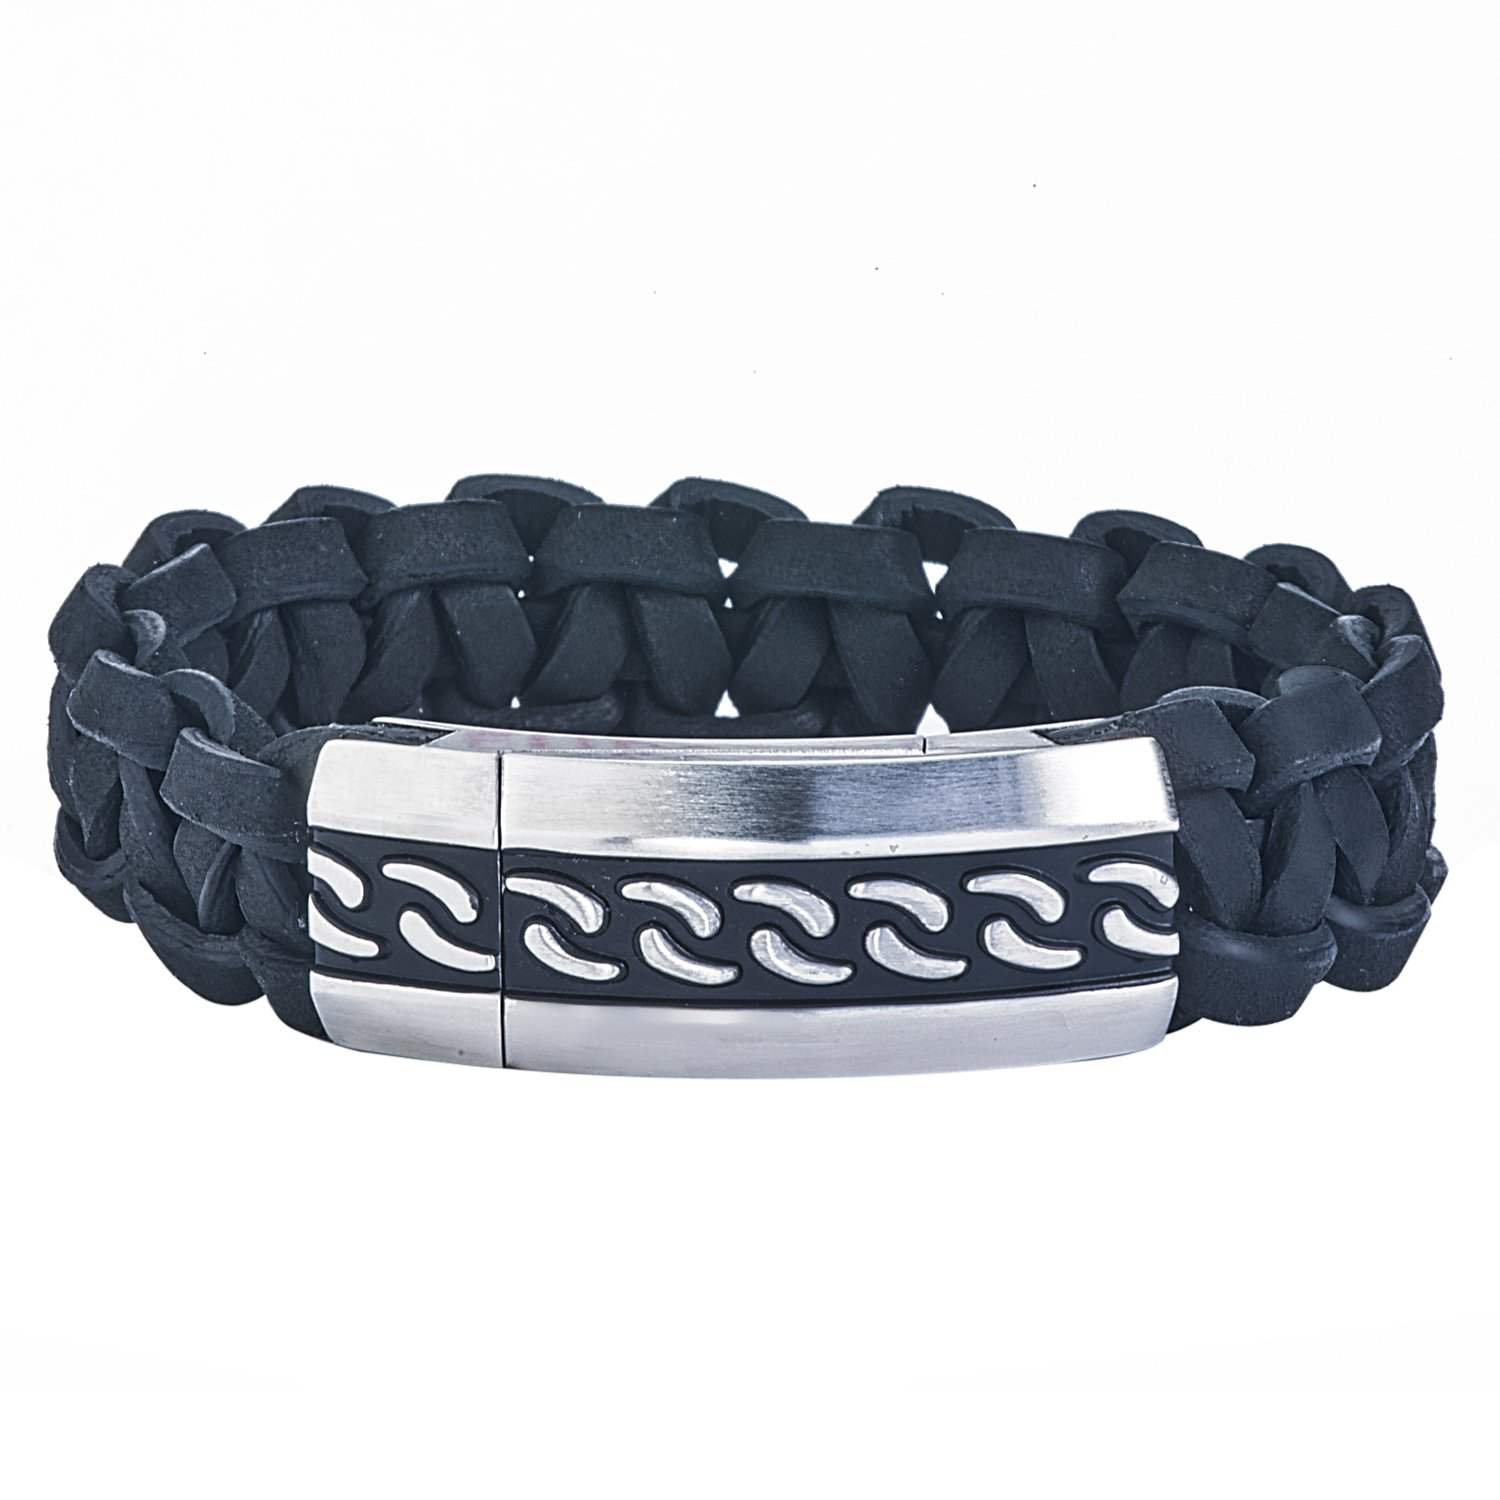 AX Jewelry Mens Stainless Steel Braided Leather Bracelet by AX Jewelry (Image #1)